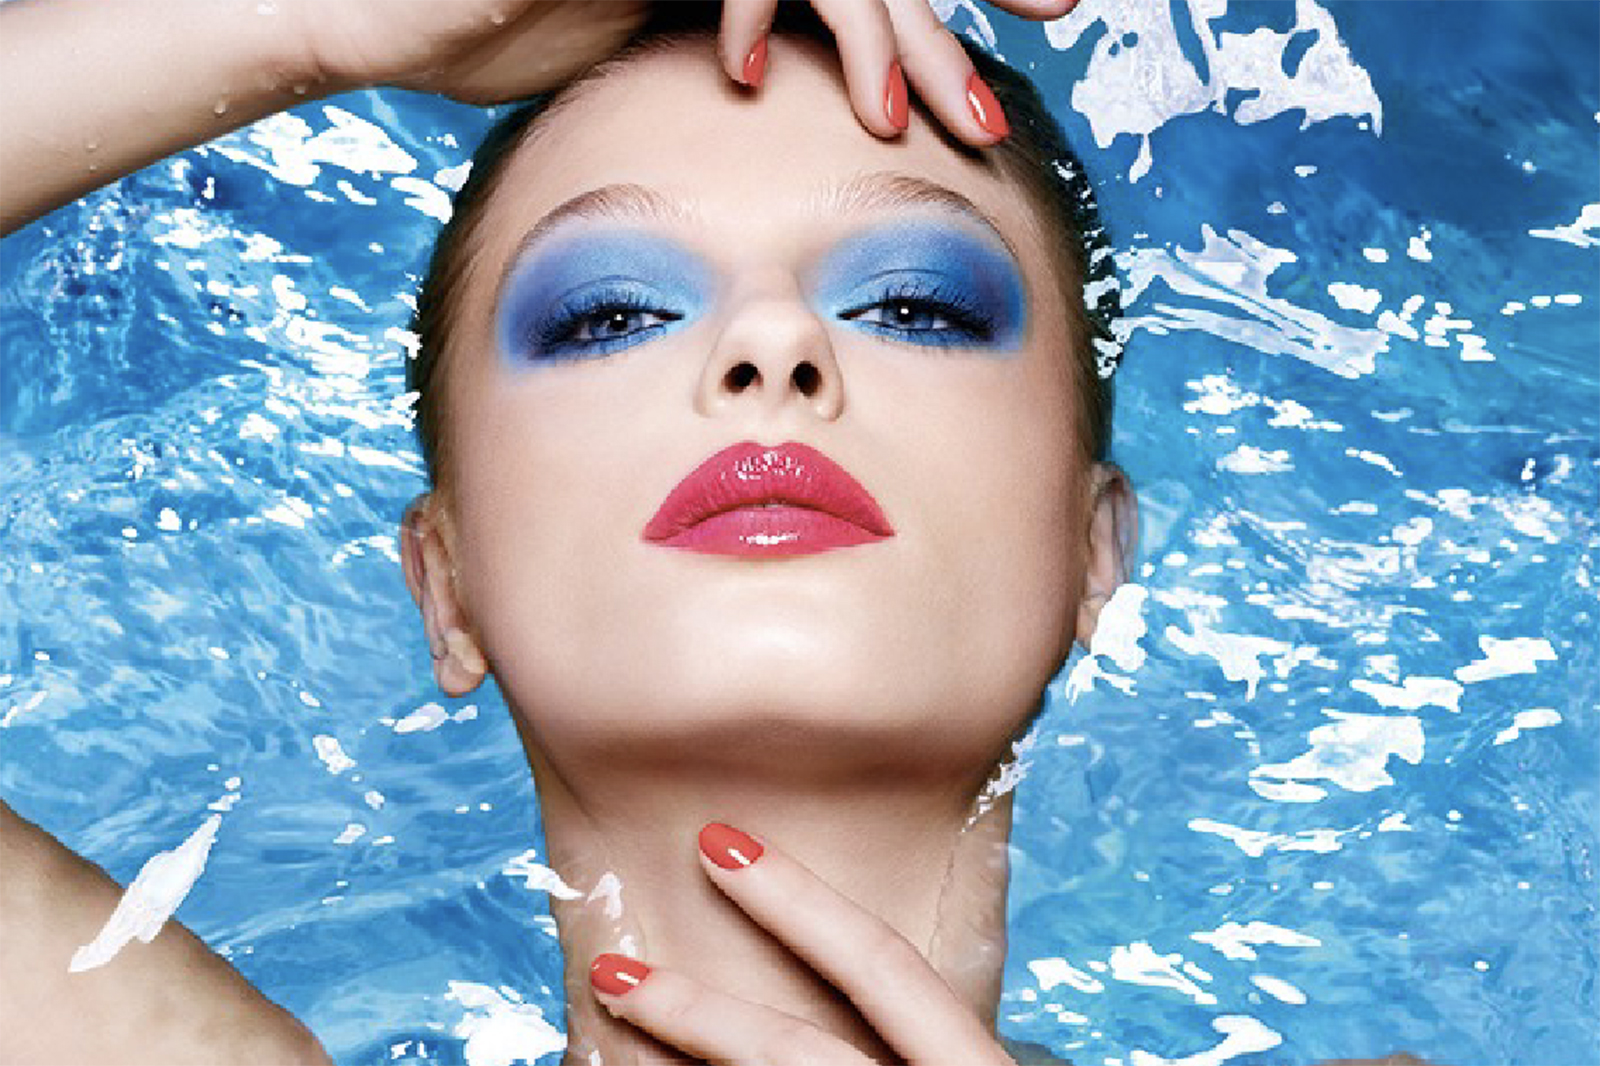 dior collection maquillage cool wave avis test